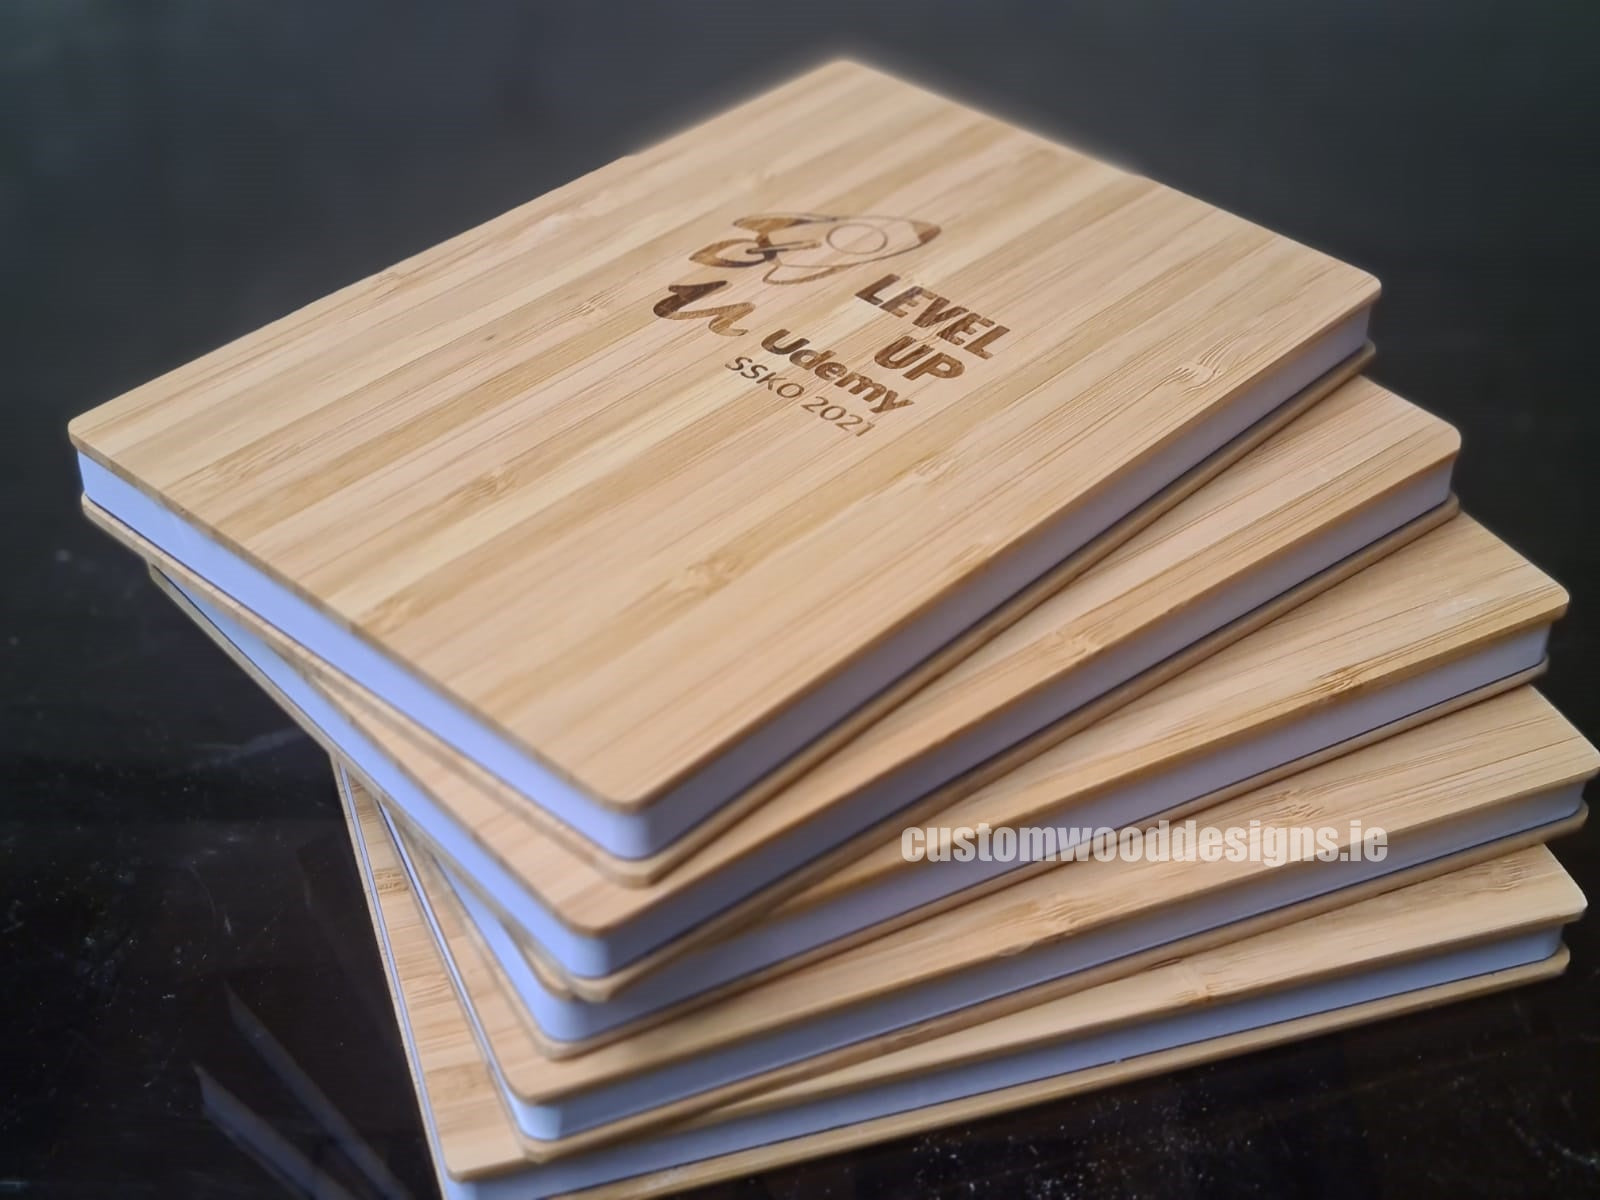 SWAG gifting ideas Corporate gifting ireland sustainable corporate gifts custom wood designs StrideXM Wooden Books